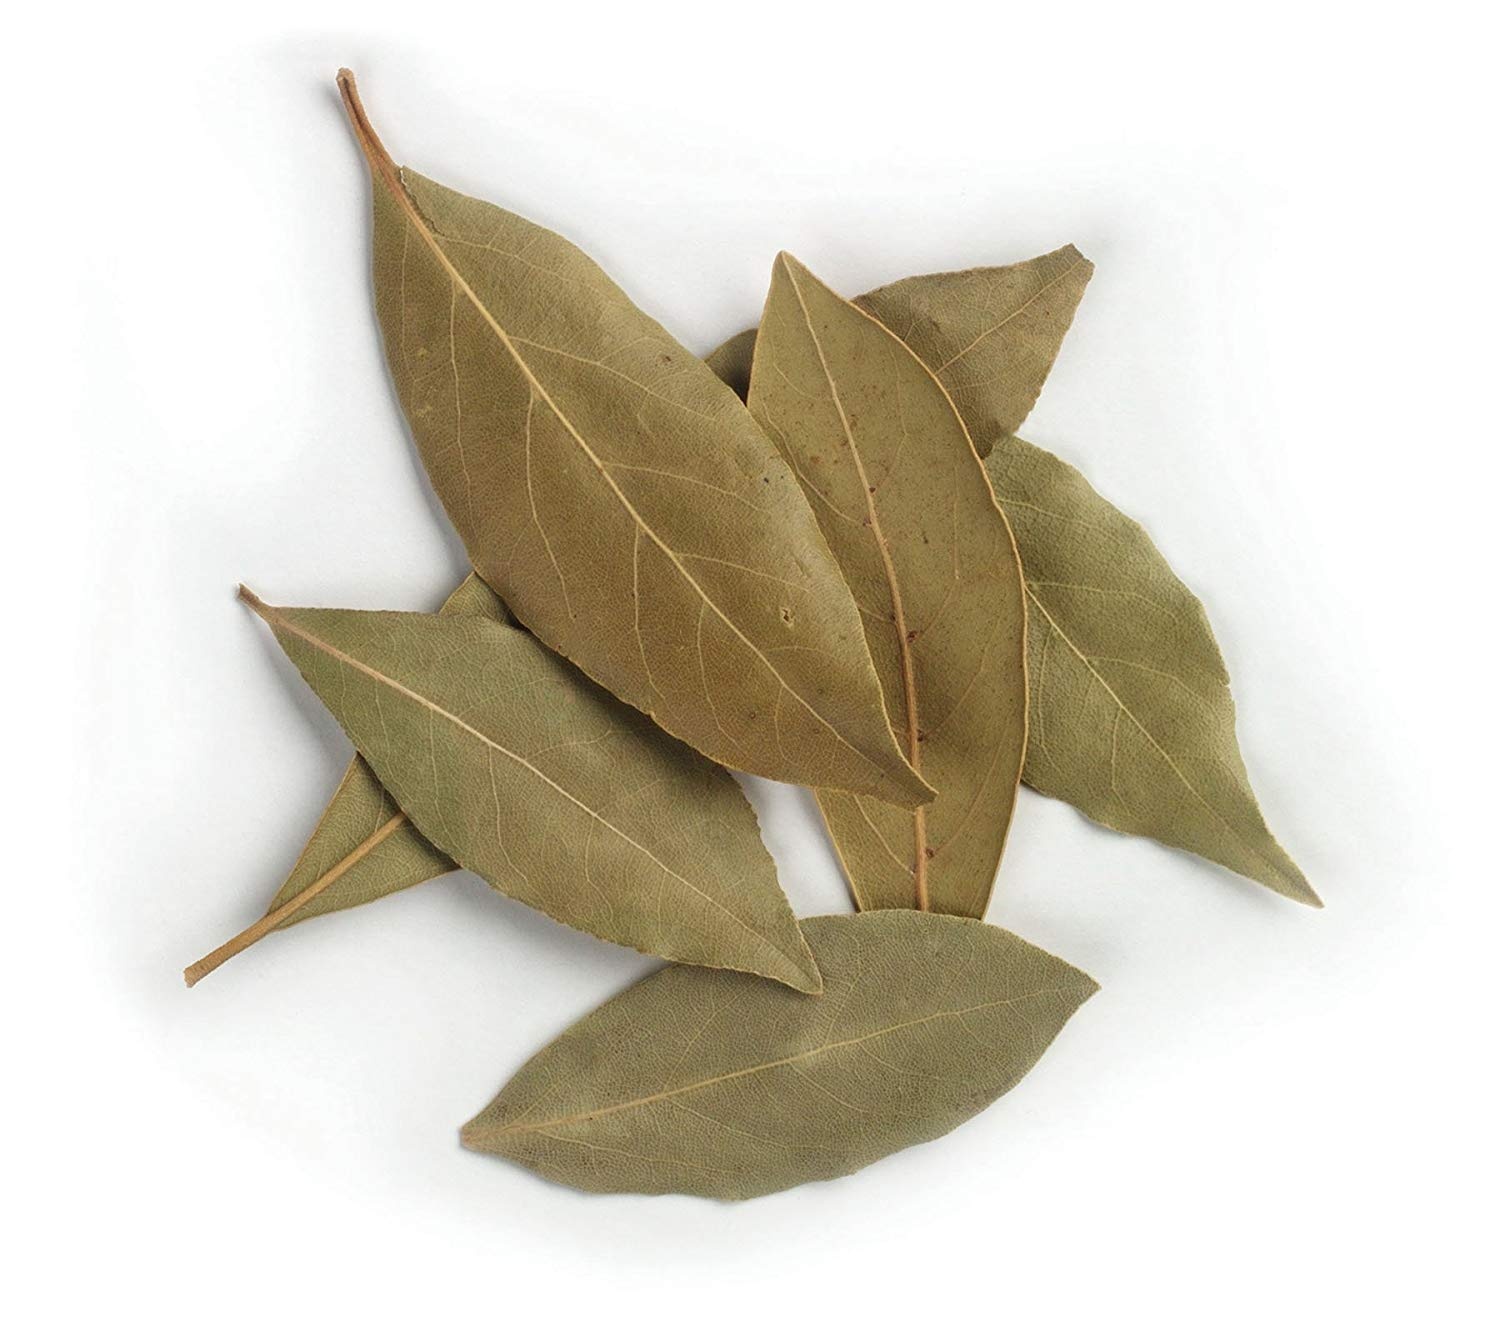 Frontier Co-op Organic Bay Leaf, Whole, 1 Pound Bulk Bag (Limited Edition)